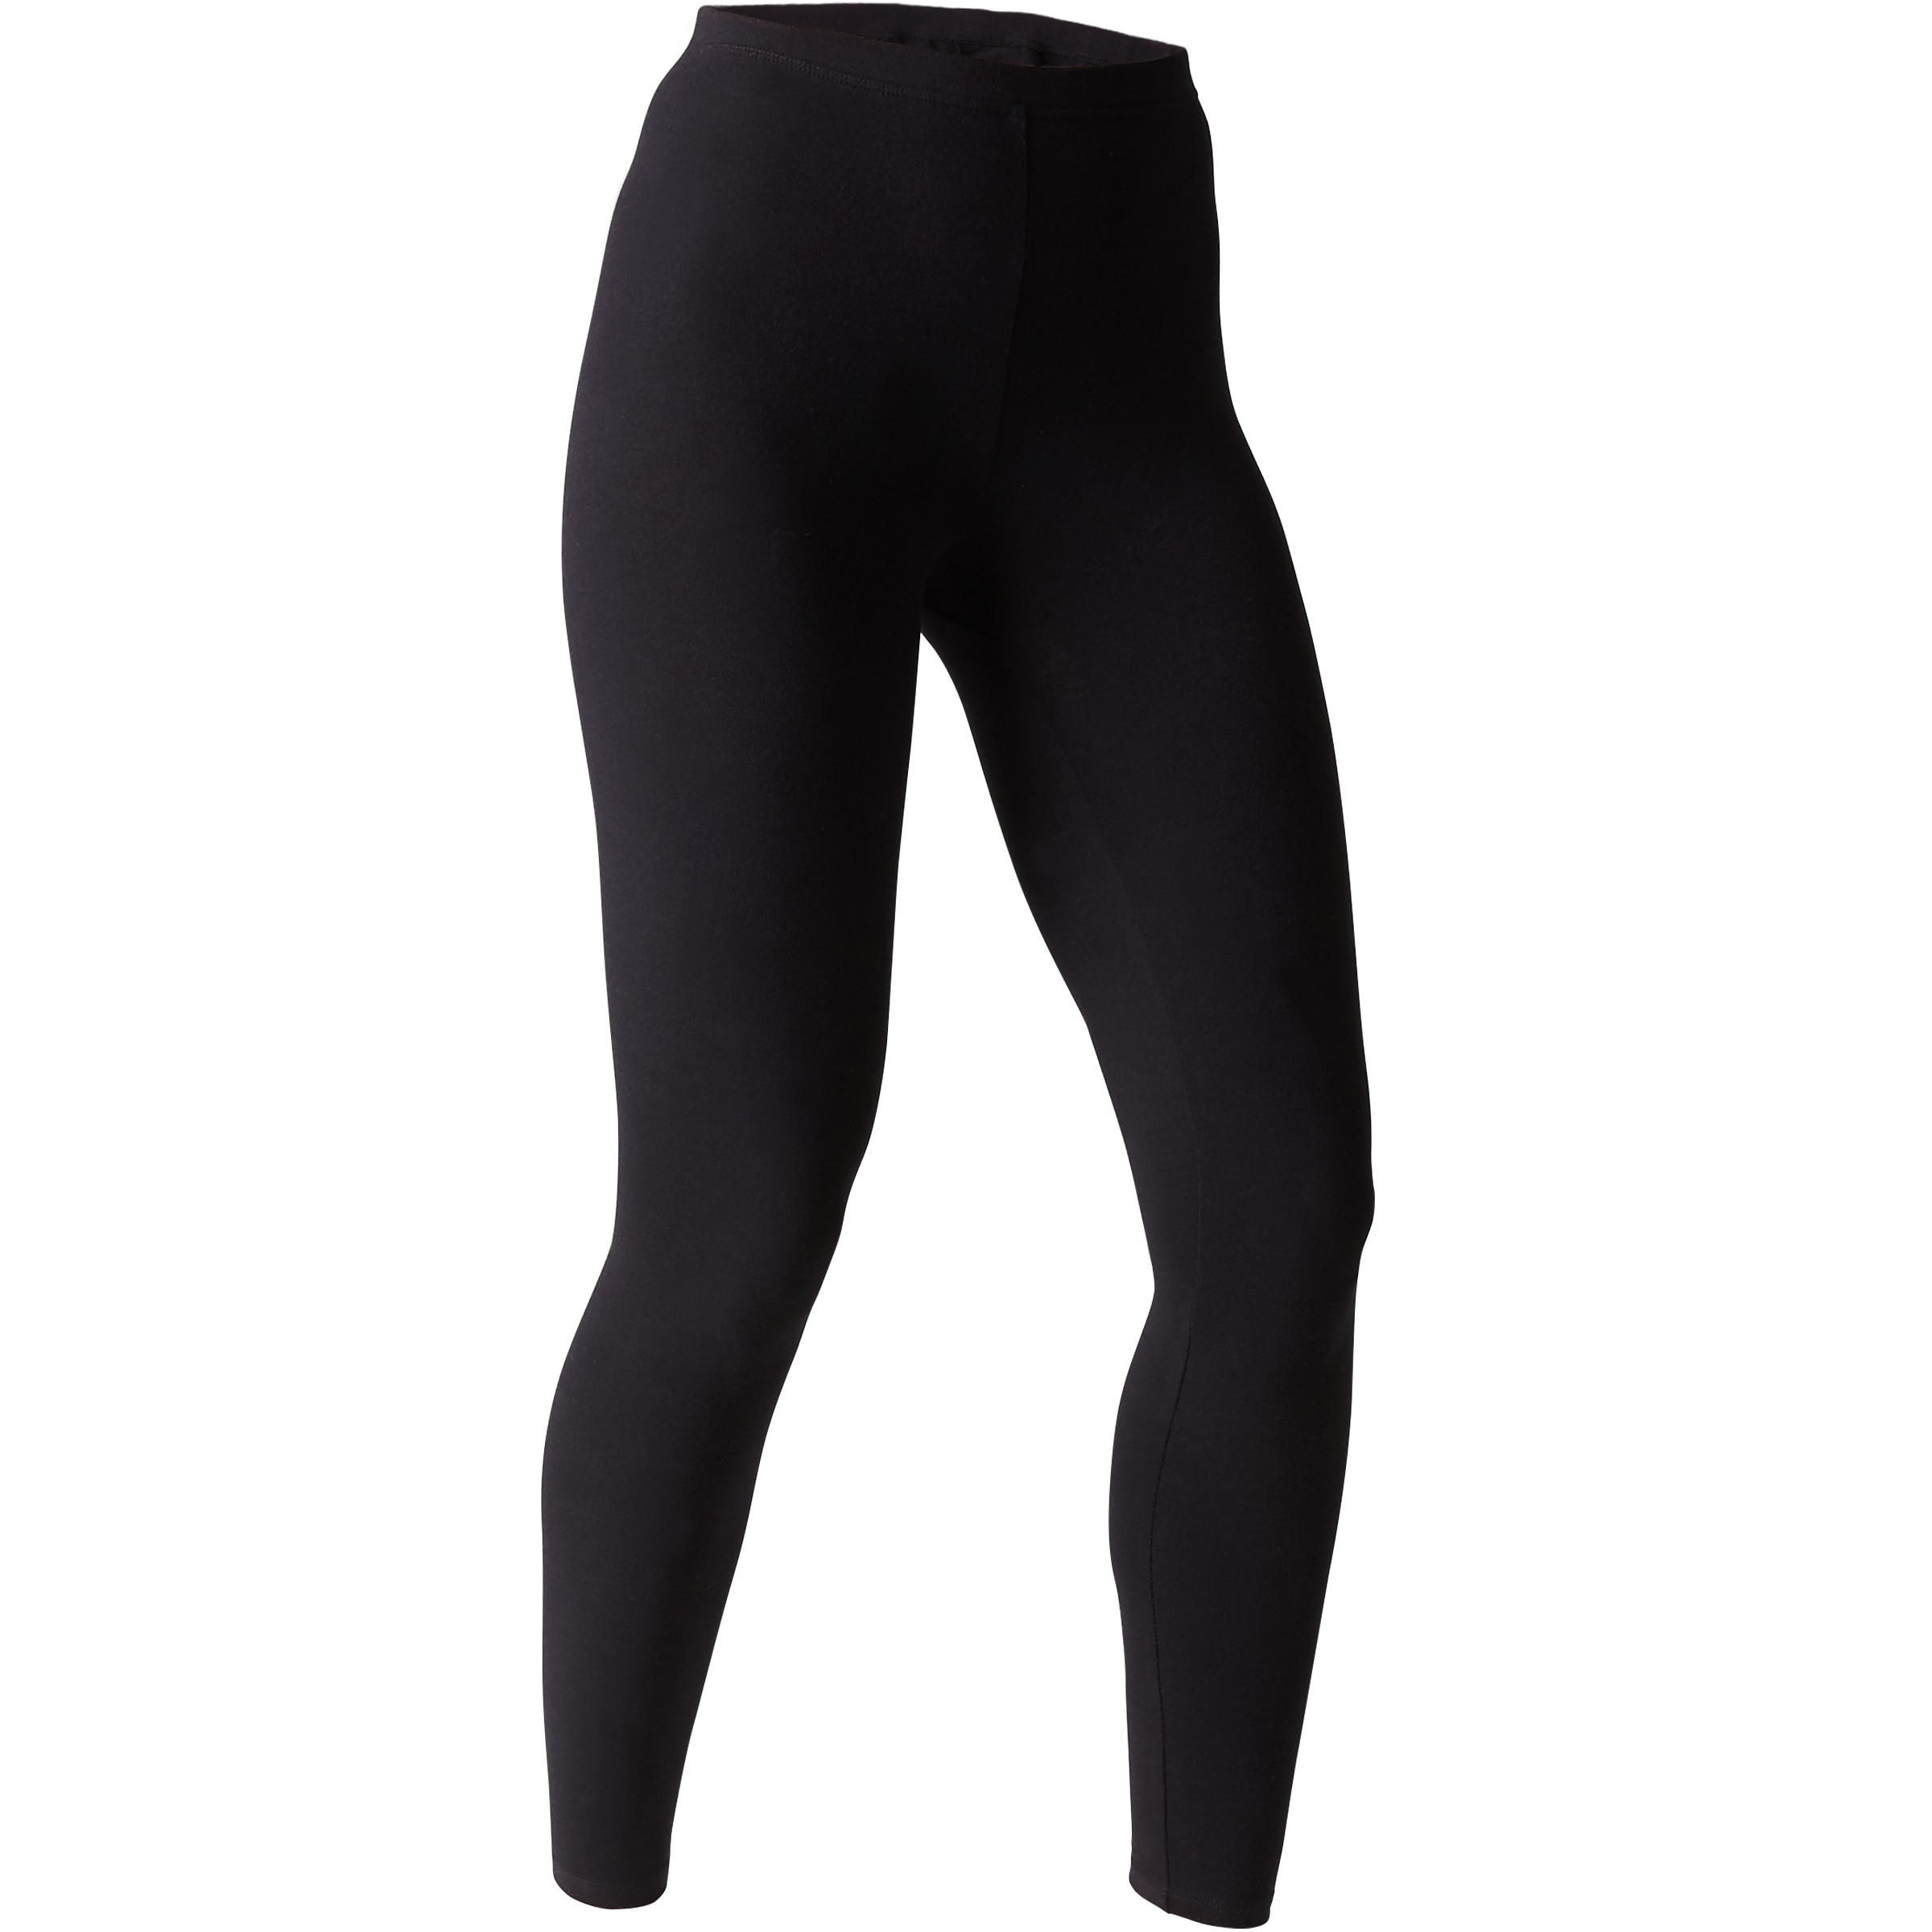 Leggings Stretch 100 slim Pilates y Gimnasia suave mujer negro